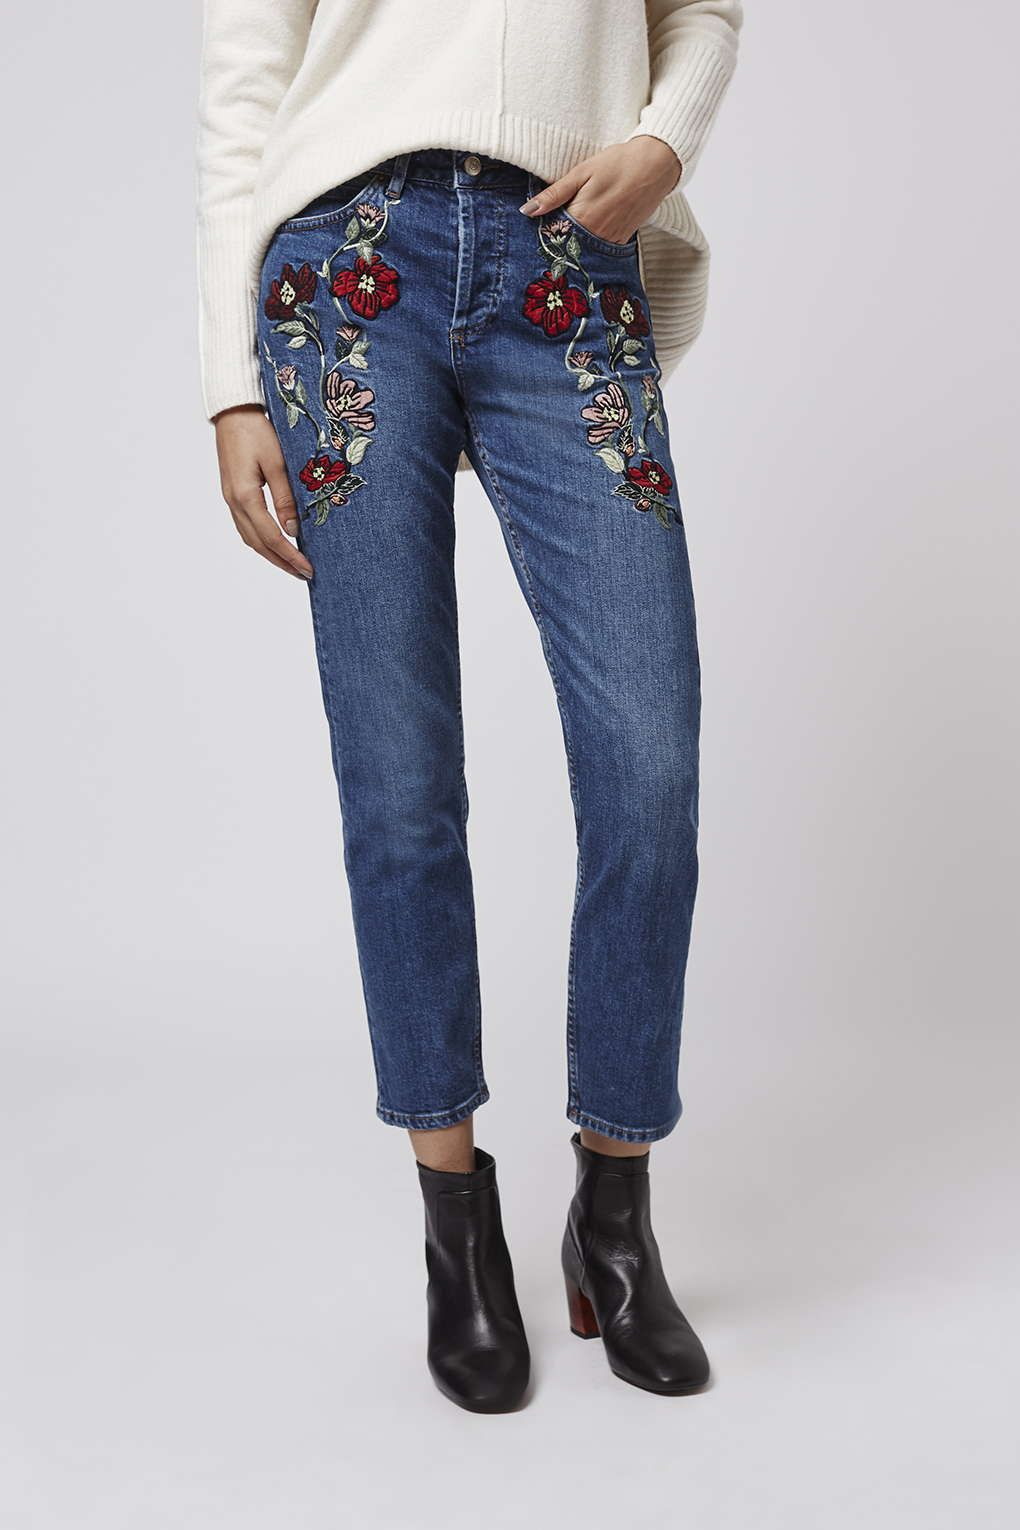 MOTO Embroidered Straight Jeans - Jeans - Clothing